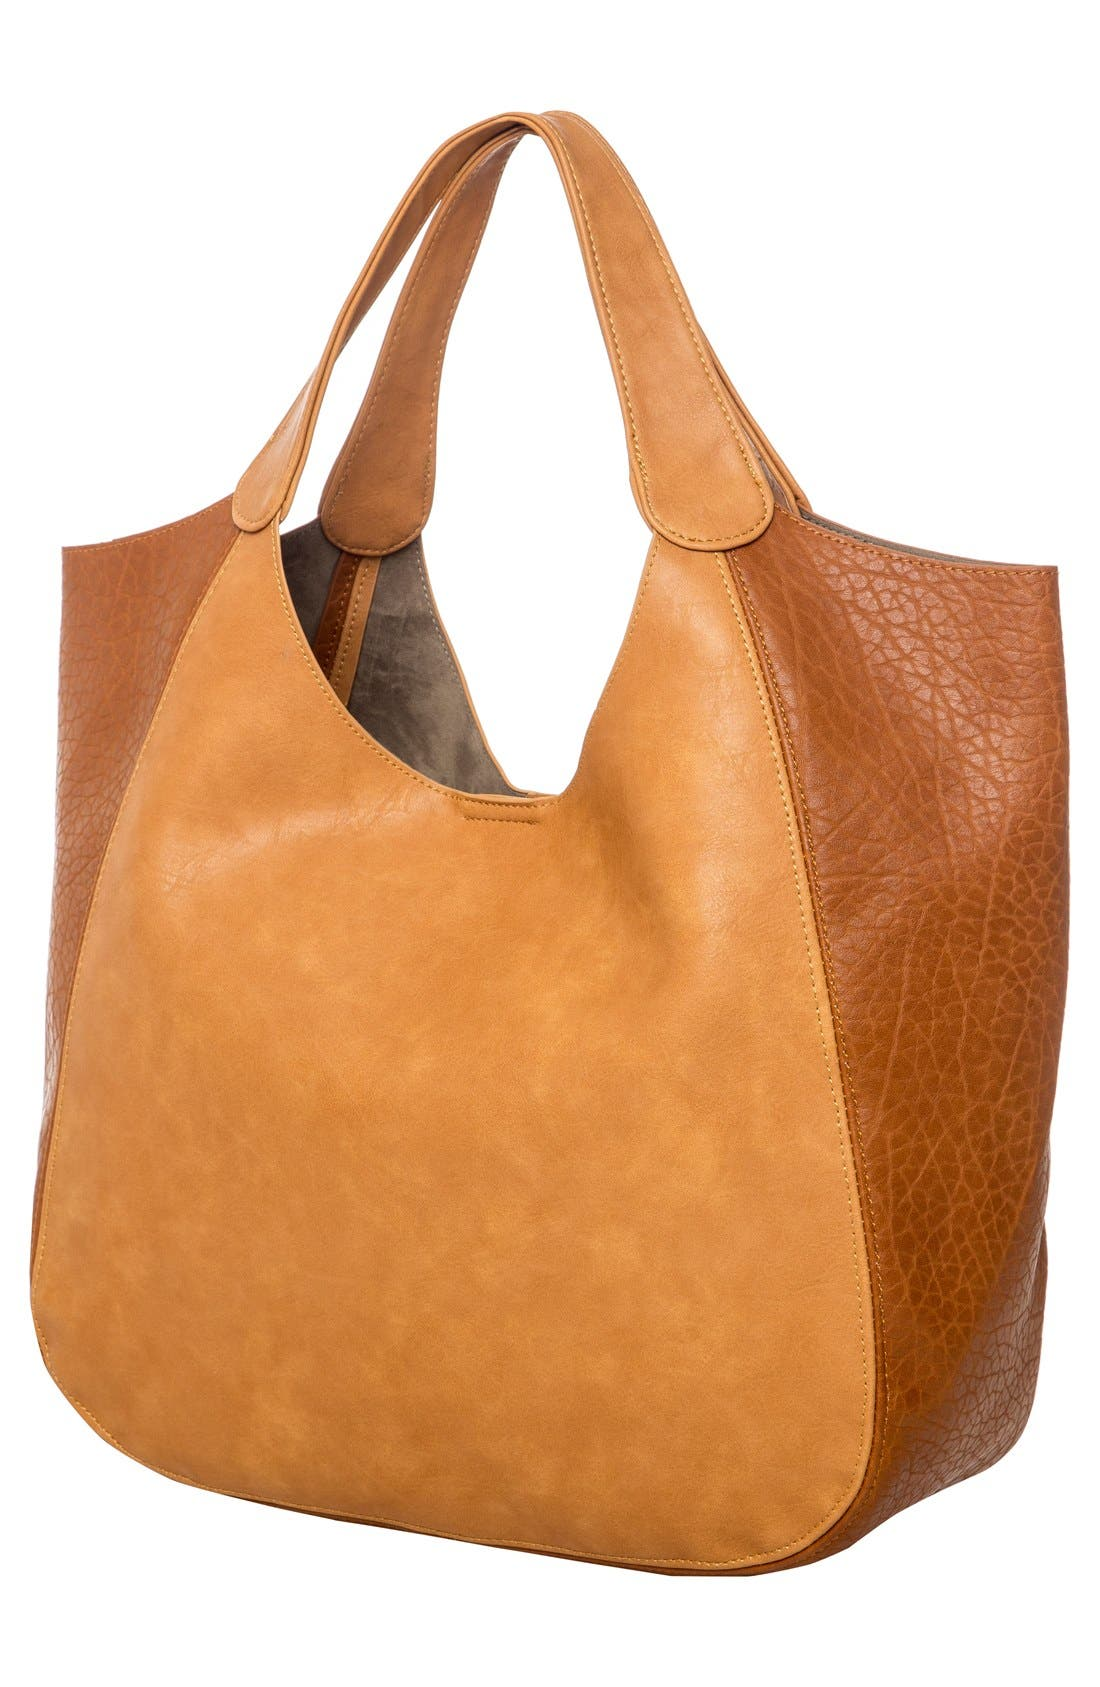 Masterpiece Vegan Leather Tote,                             Alternate thumbnail 2, color,                             200